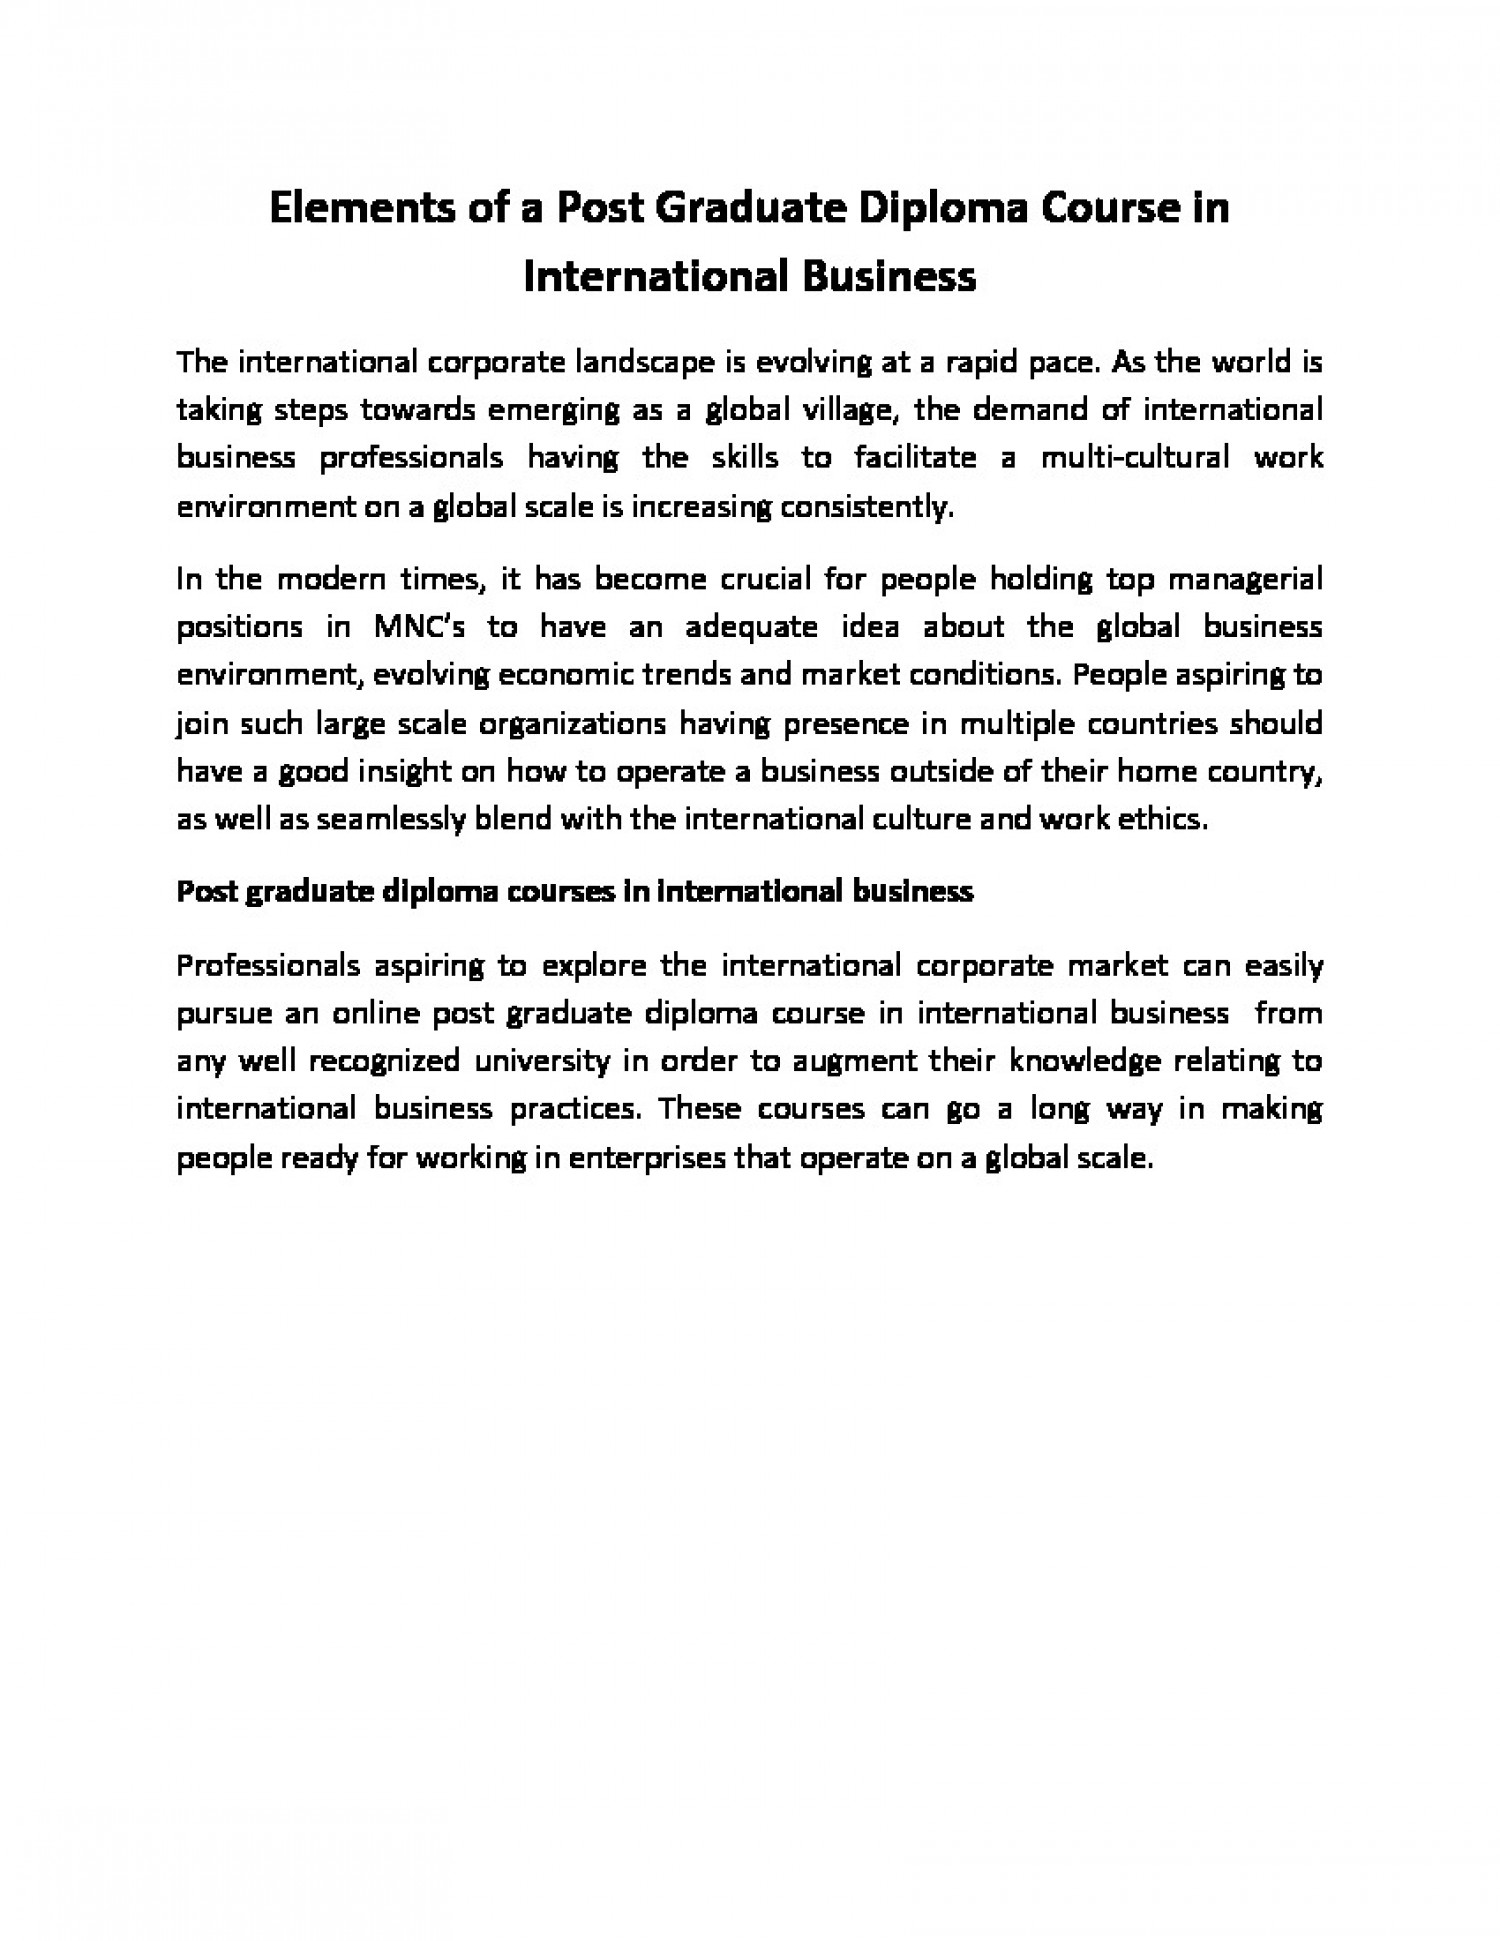 Elements of a Post Graduate Diploma Course in International Business Infographic